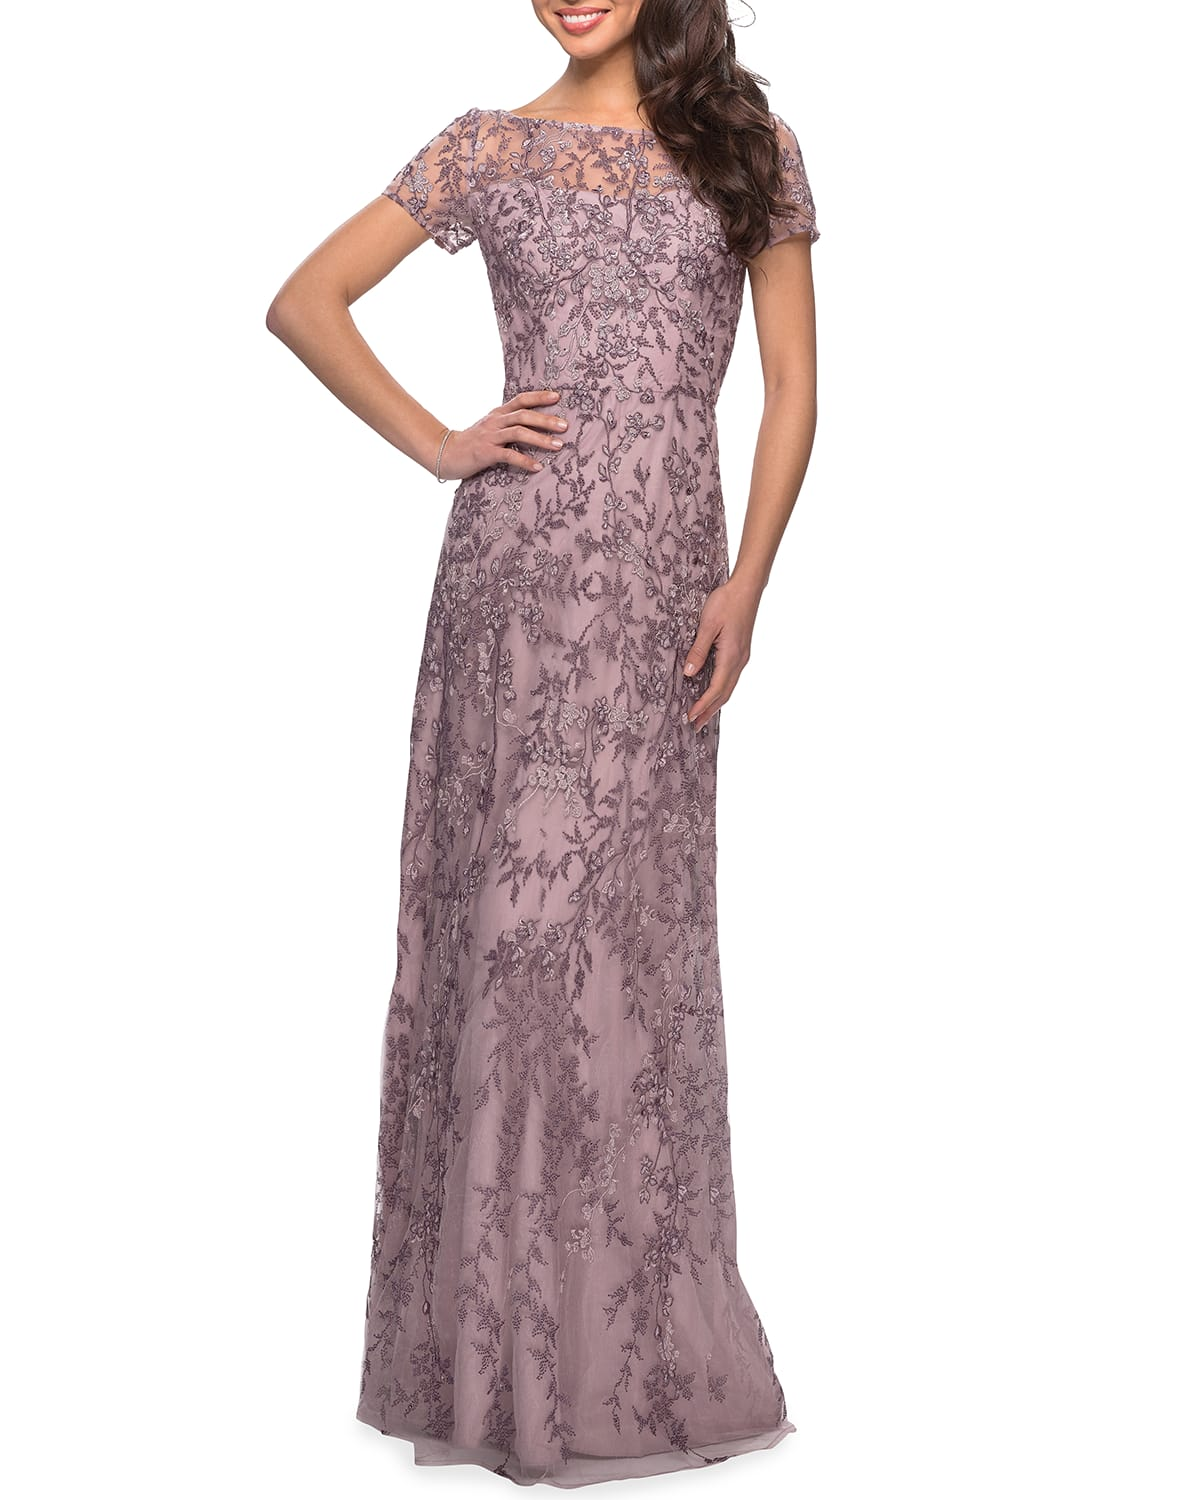 High-Neck Floral Beaded Lace Gown